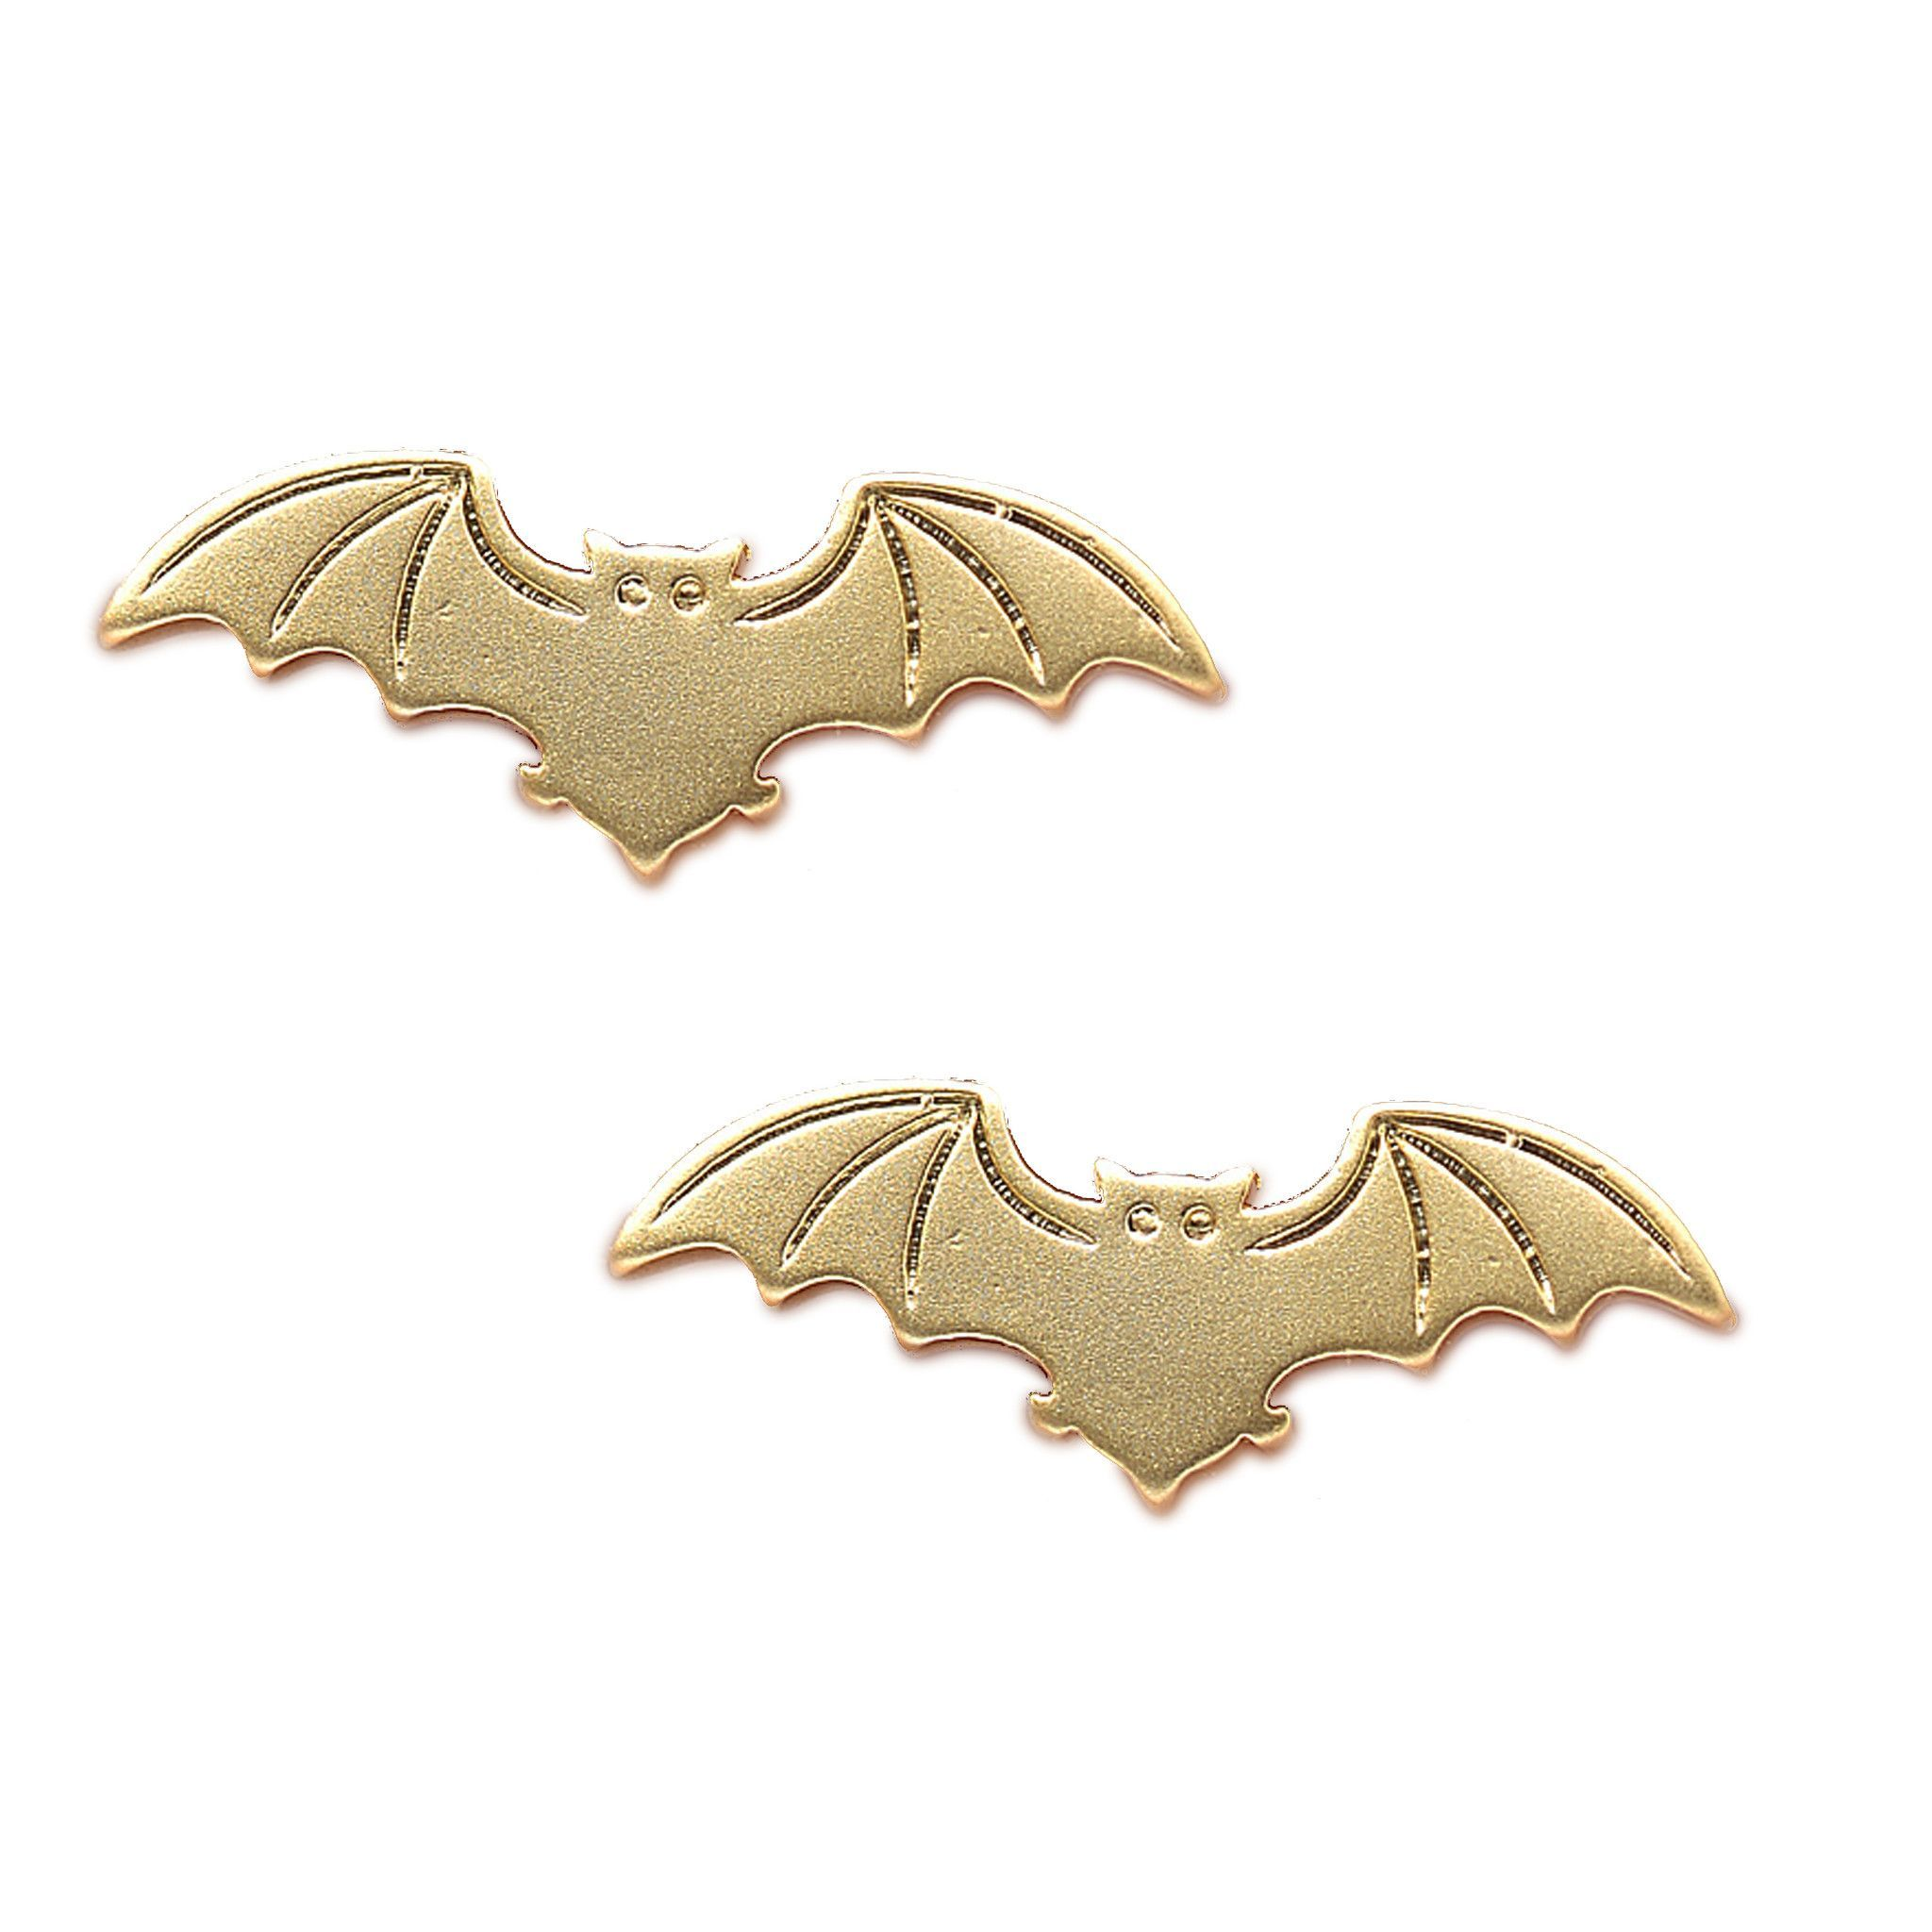 Spinningdaisy Matte Finish Mighty Bat Earrings